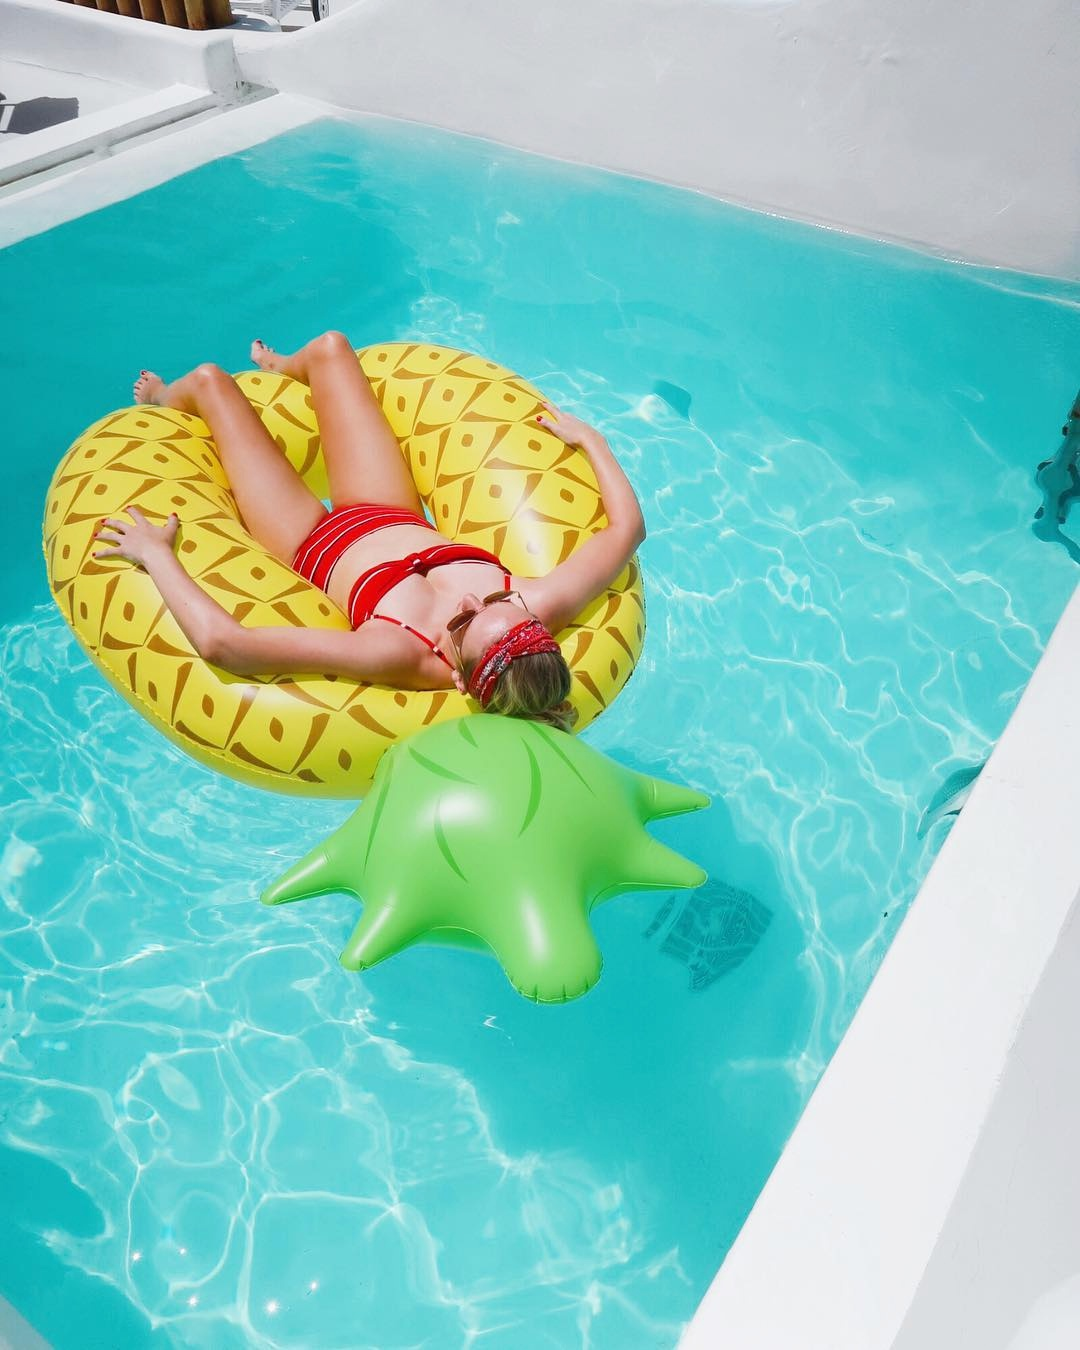 Pool Float Pineapple - The LDN Diaries - UK Travel Blogger